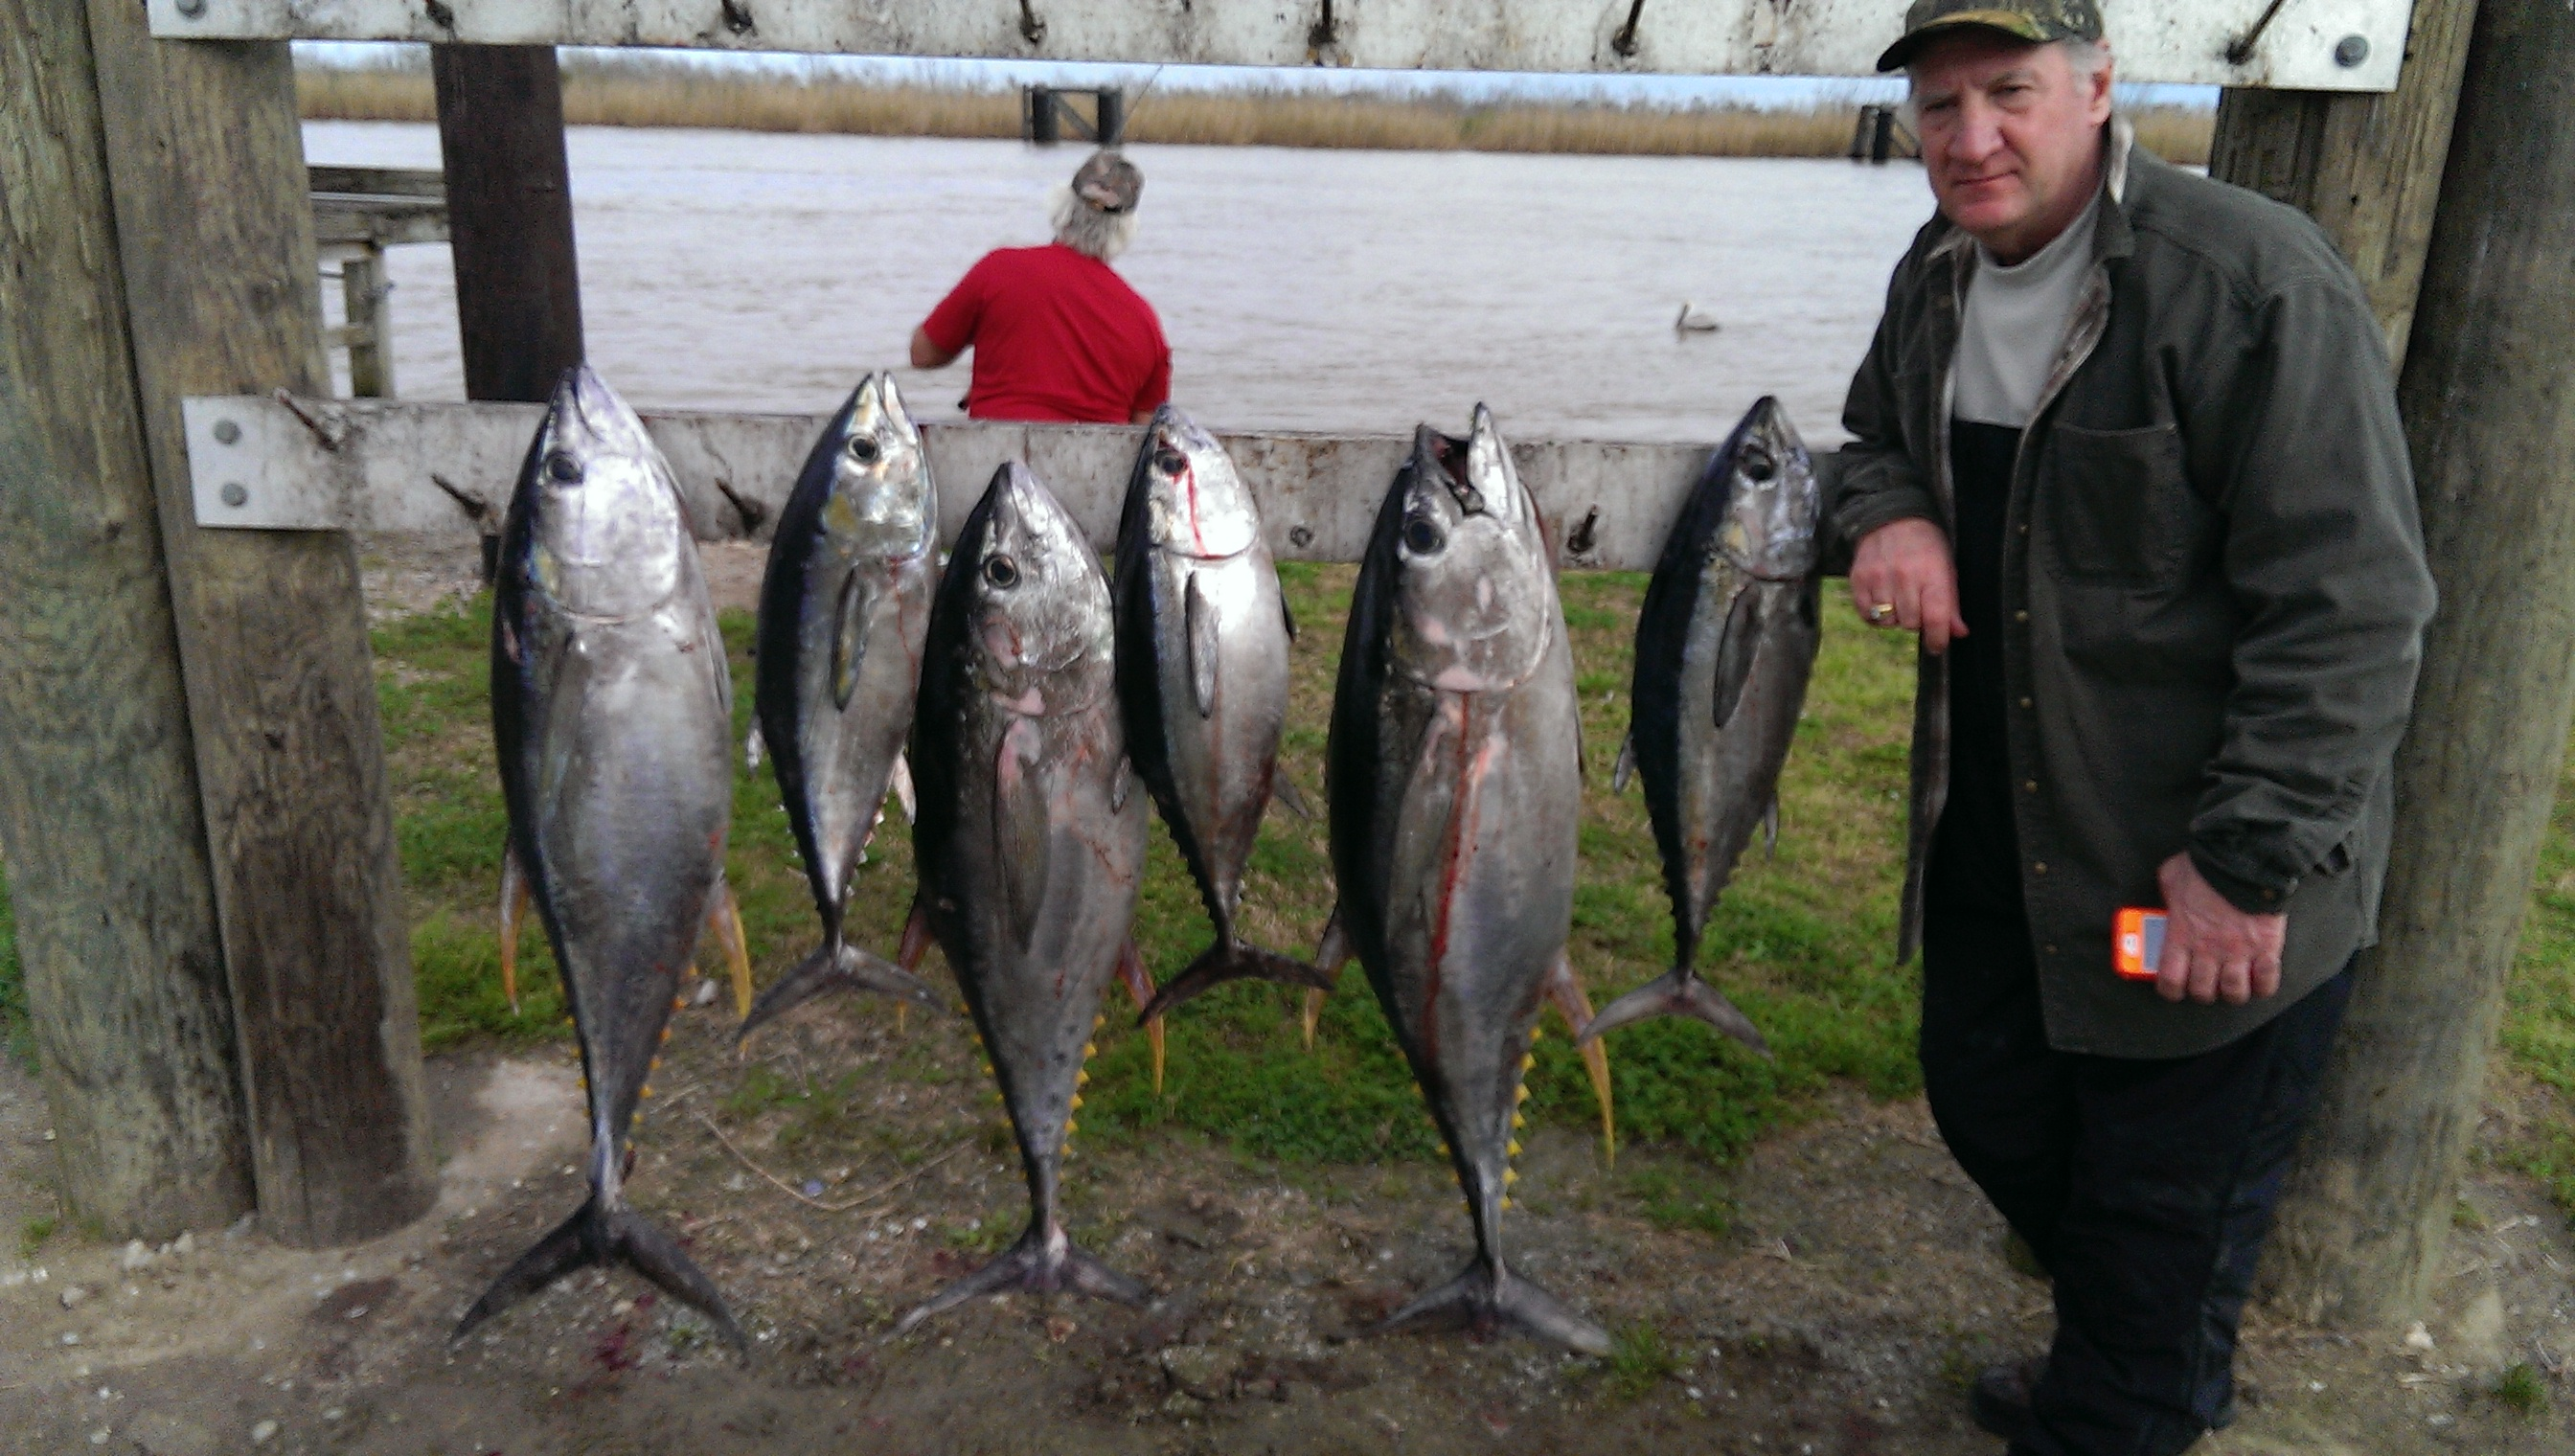 Summer is here and so are the fish venice louisiana for La fishing charters